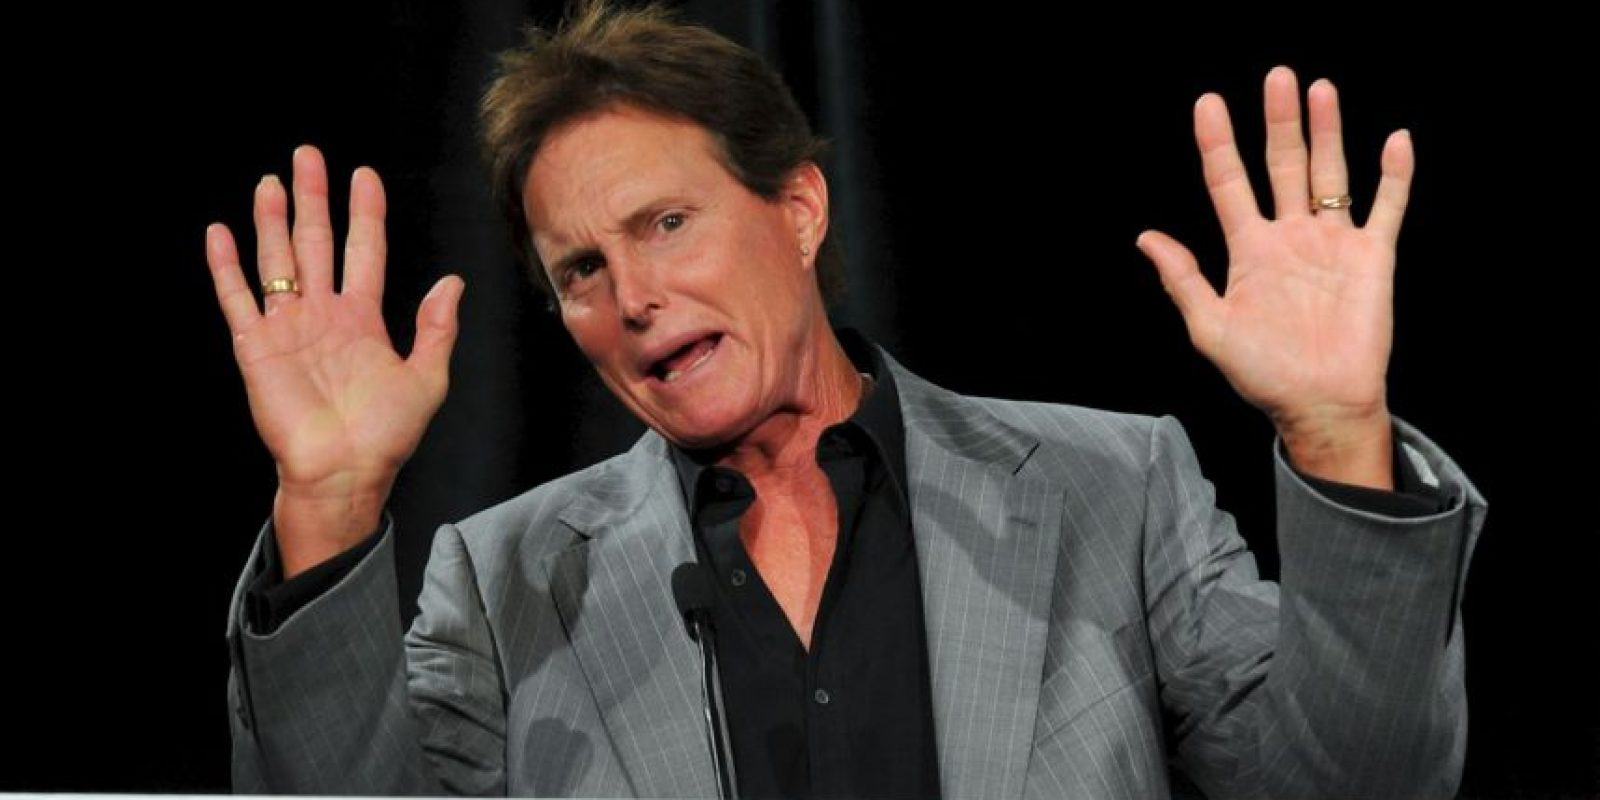 Bruce Jenner tiene seis hijos Foto:Getty Images